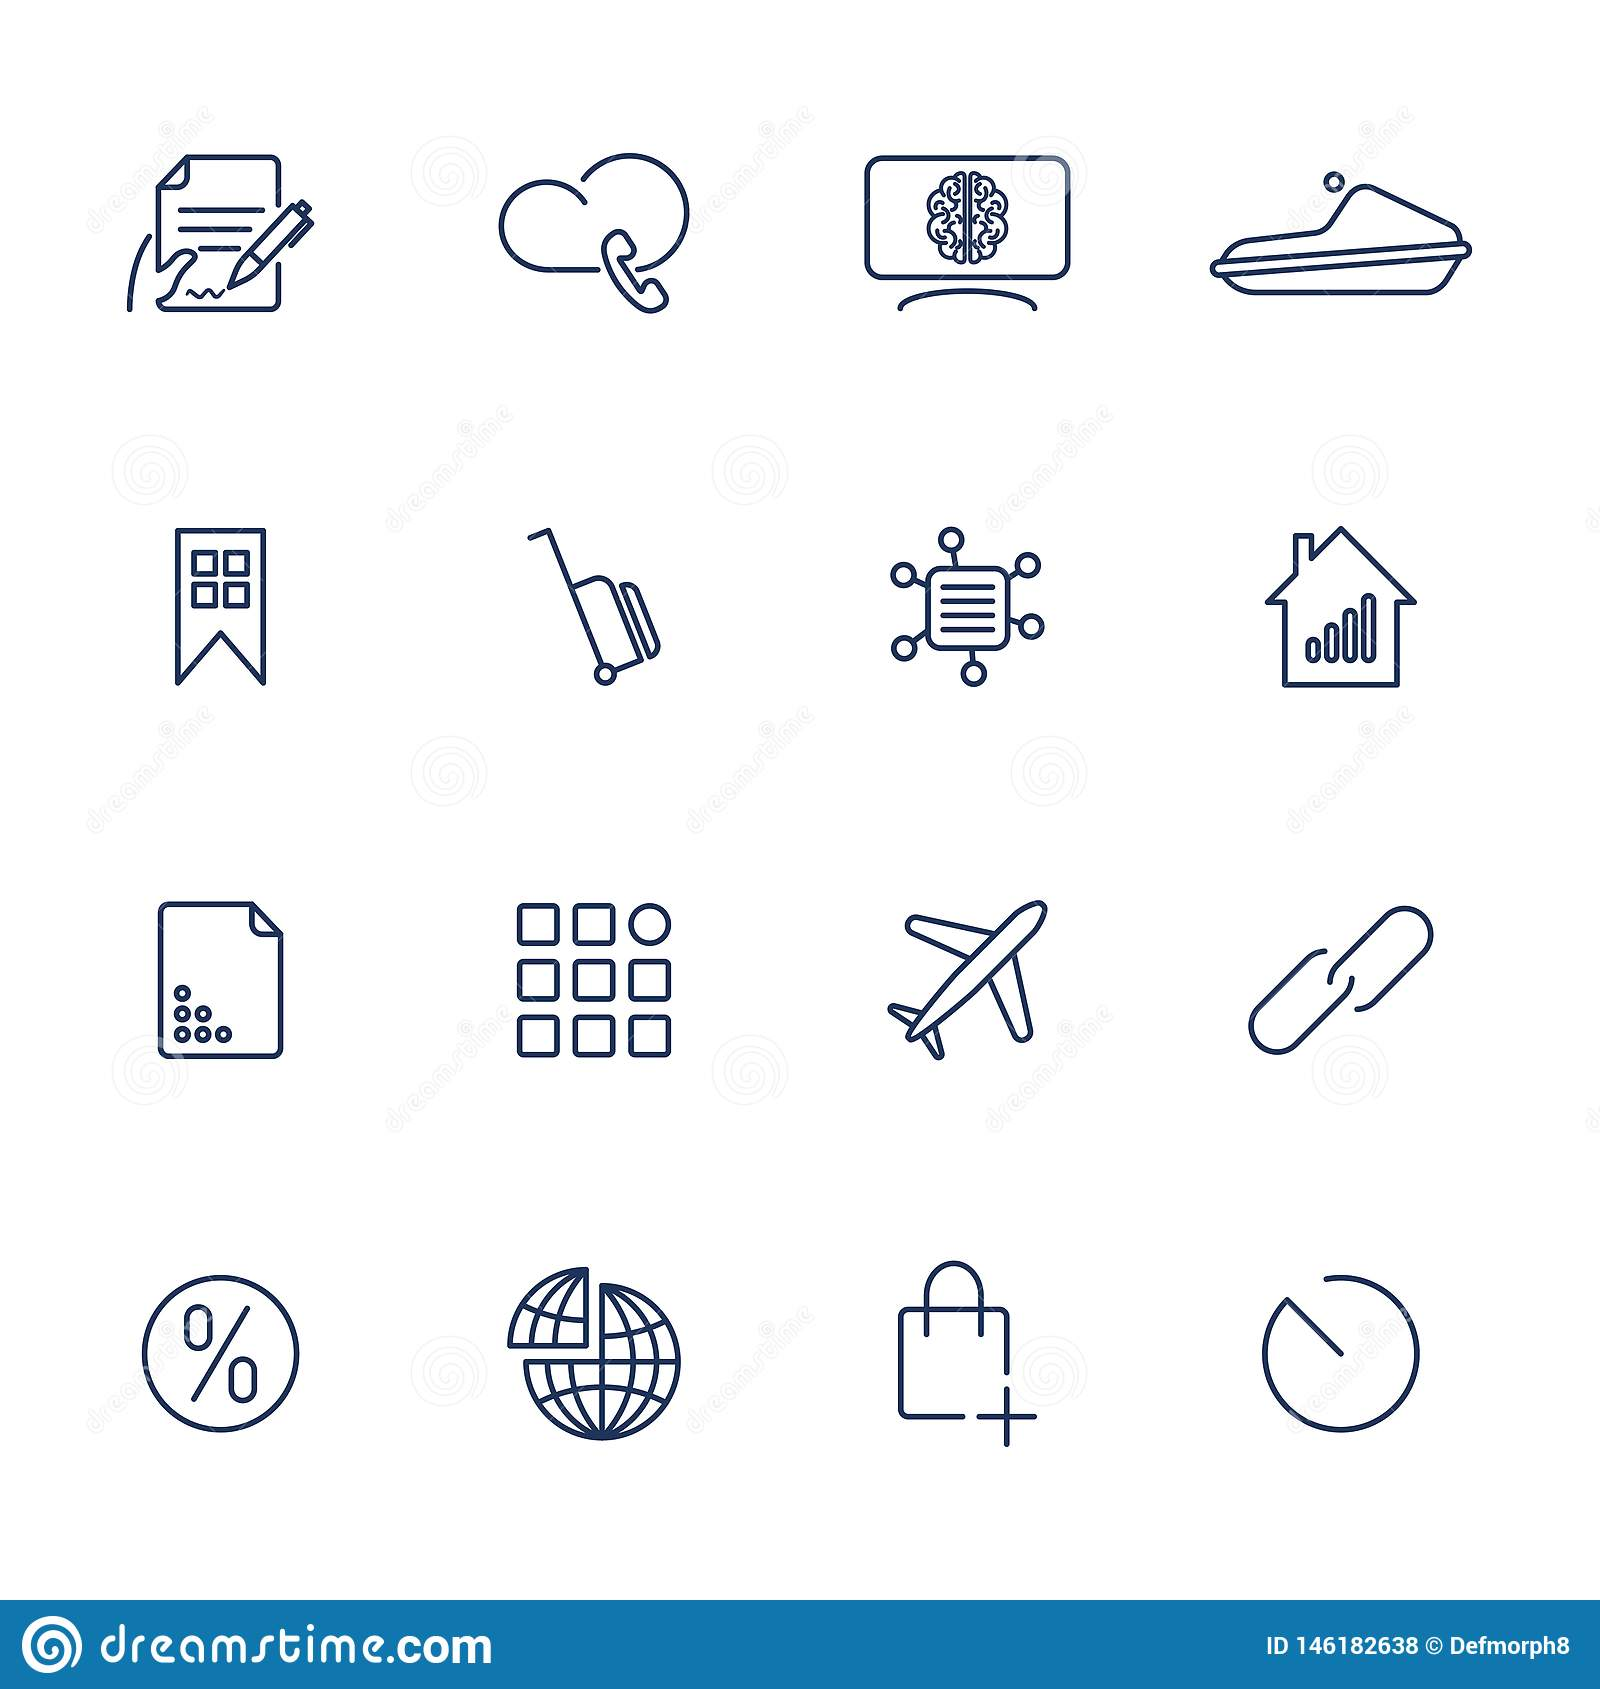 16 different icons for app, mobile, sites